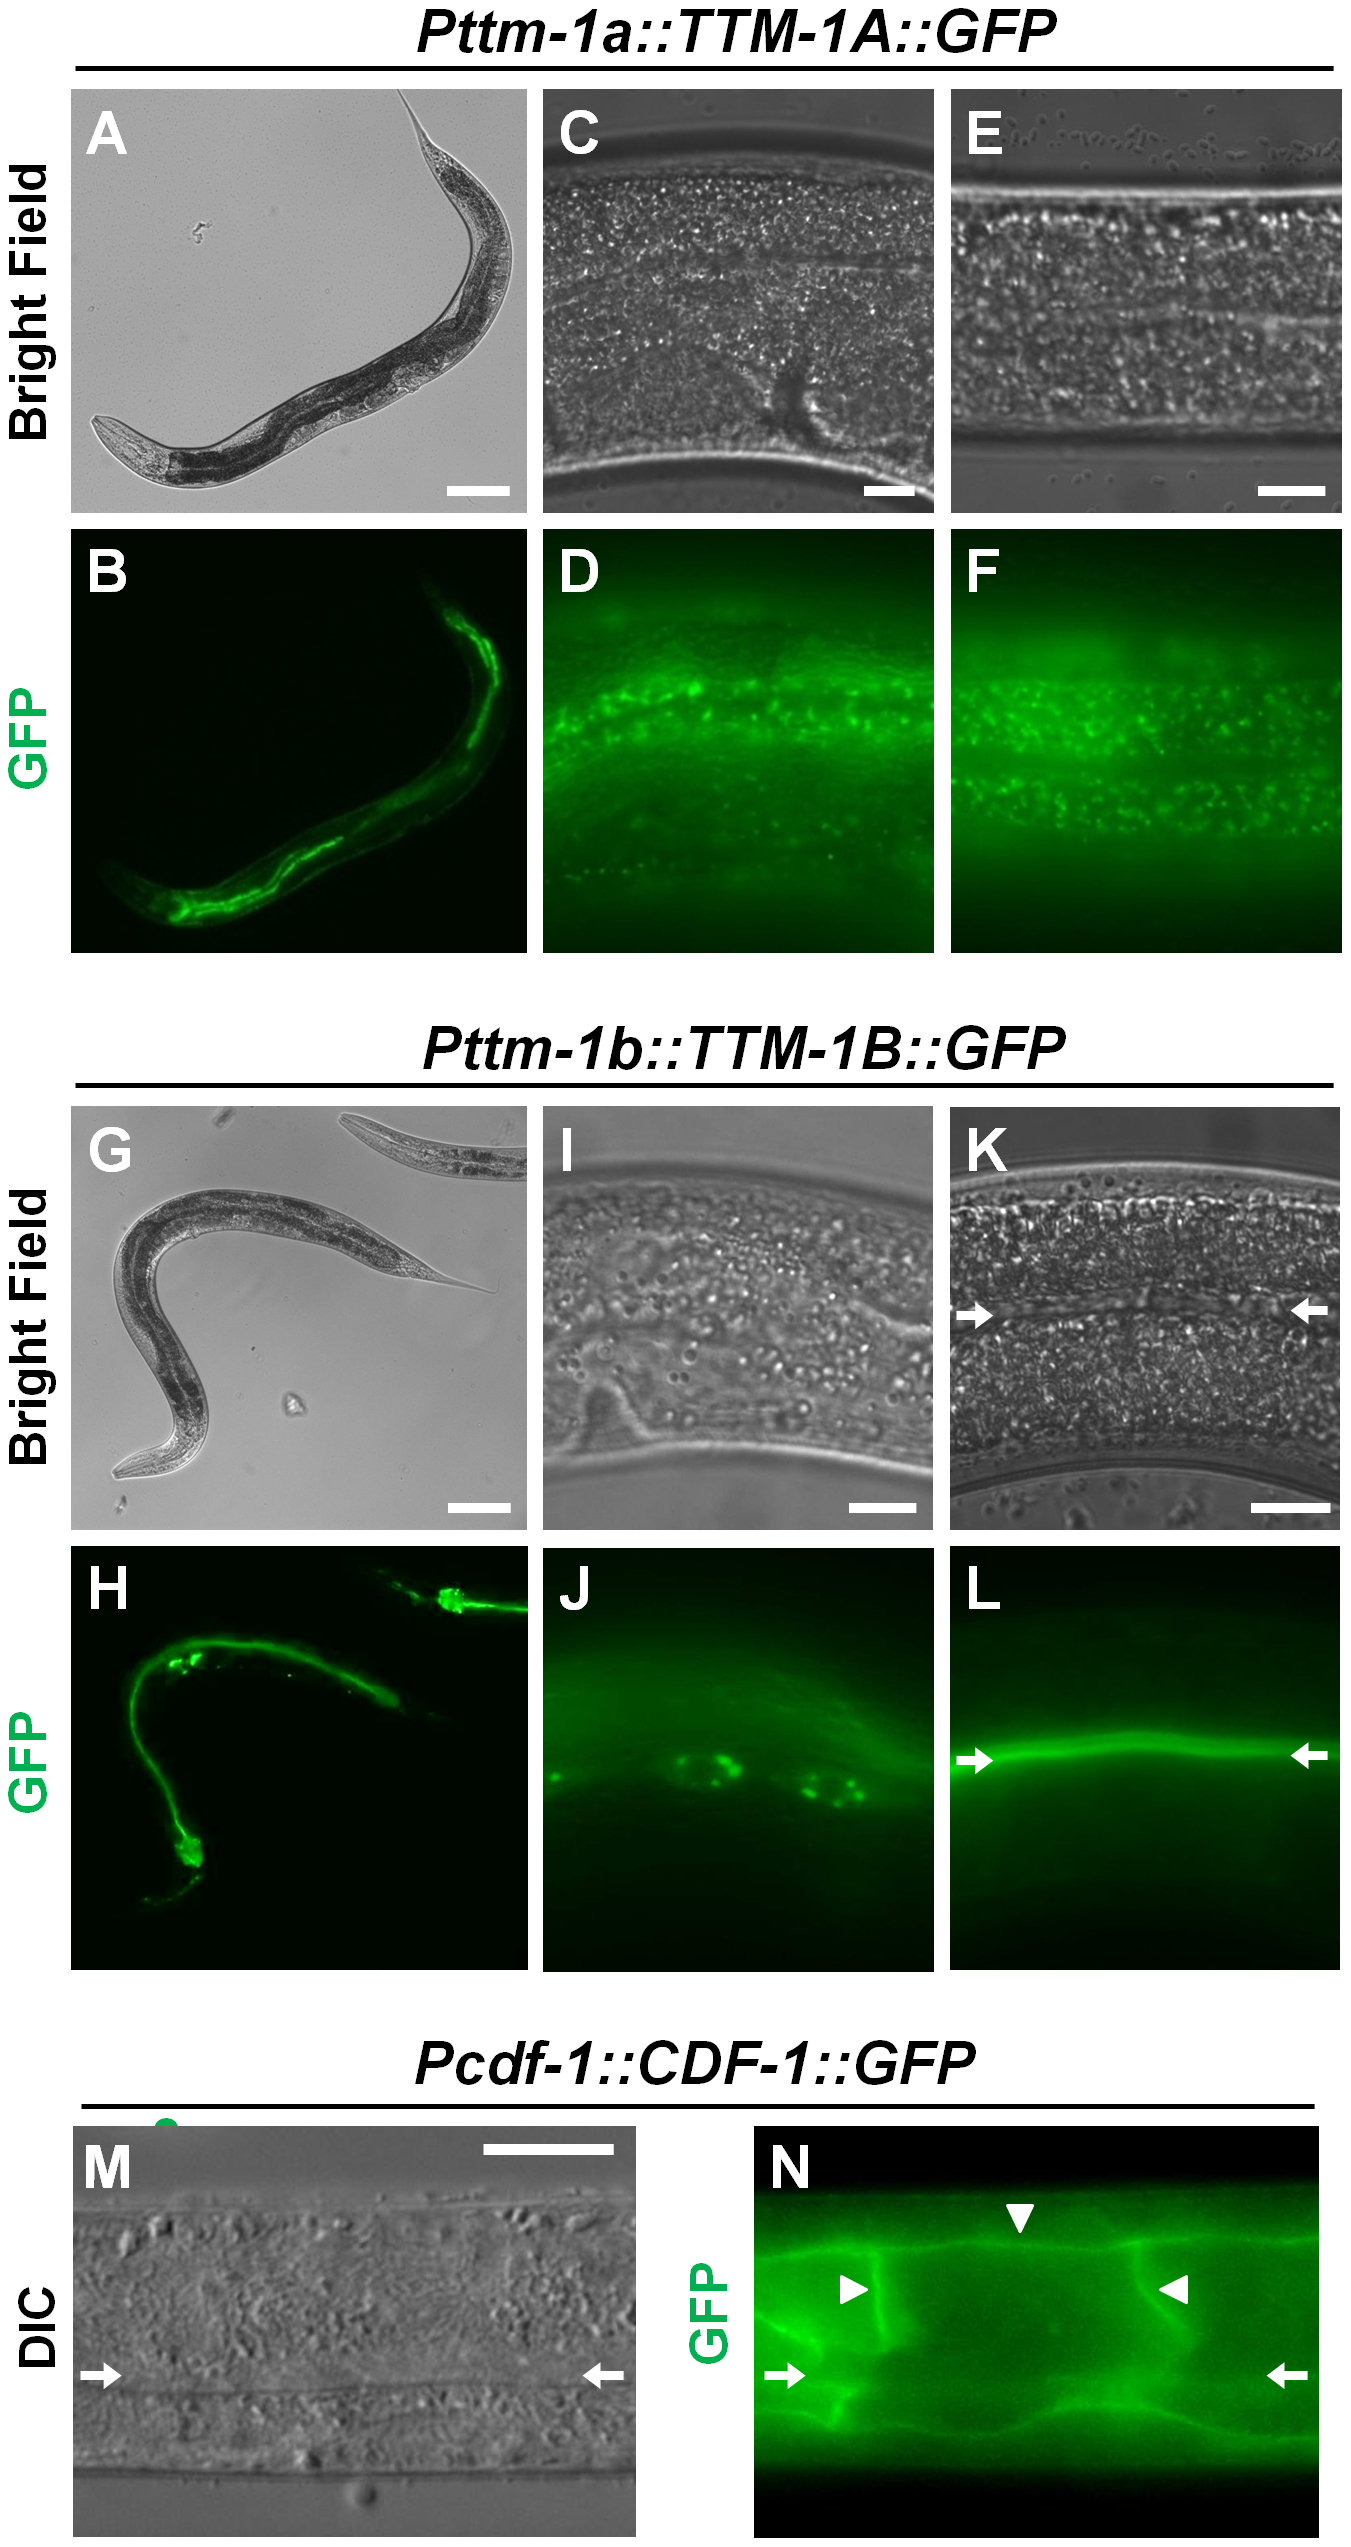 Intracellular localization of TTM-1 isoforms and CDF-1.